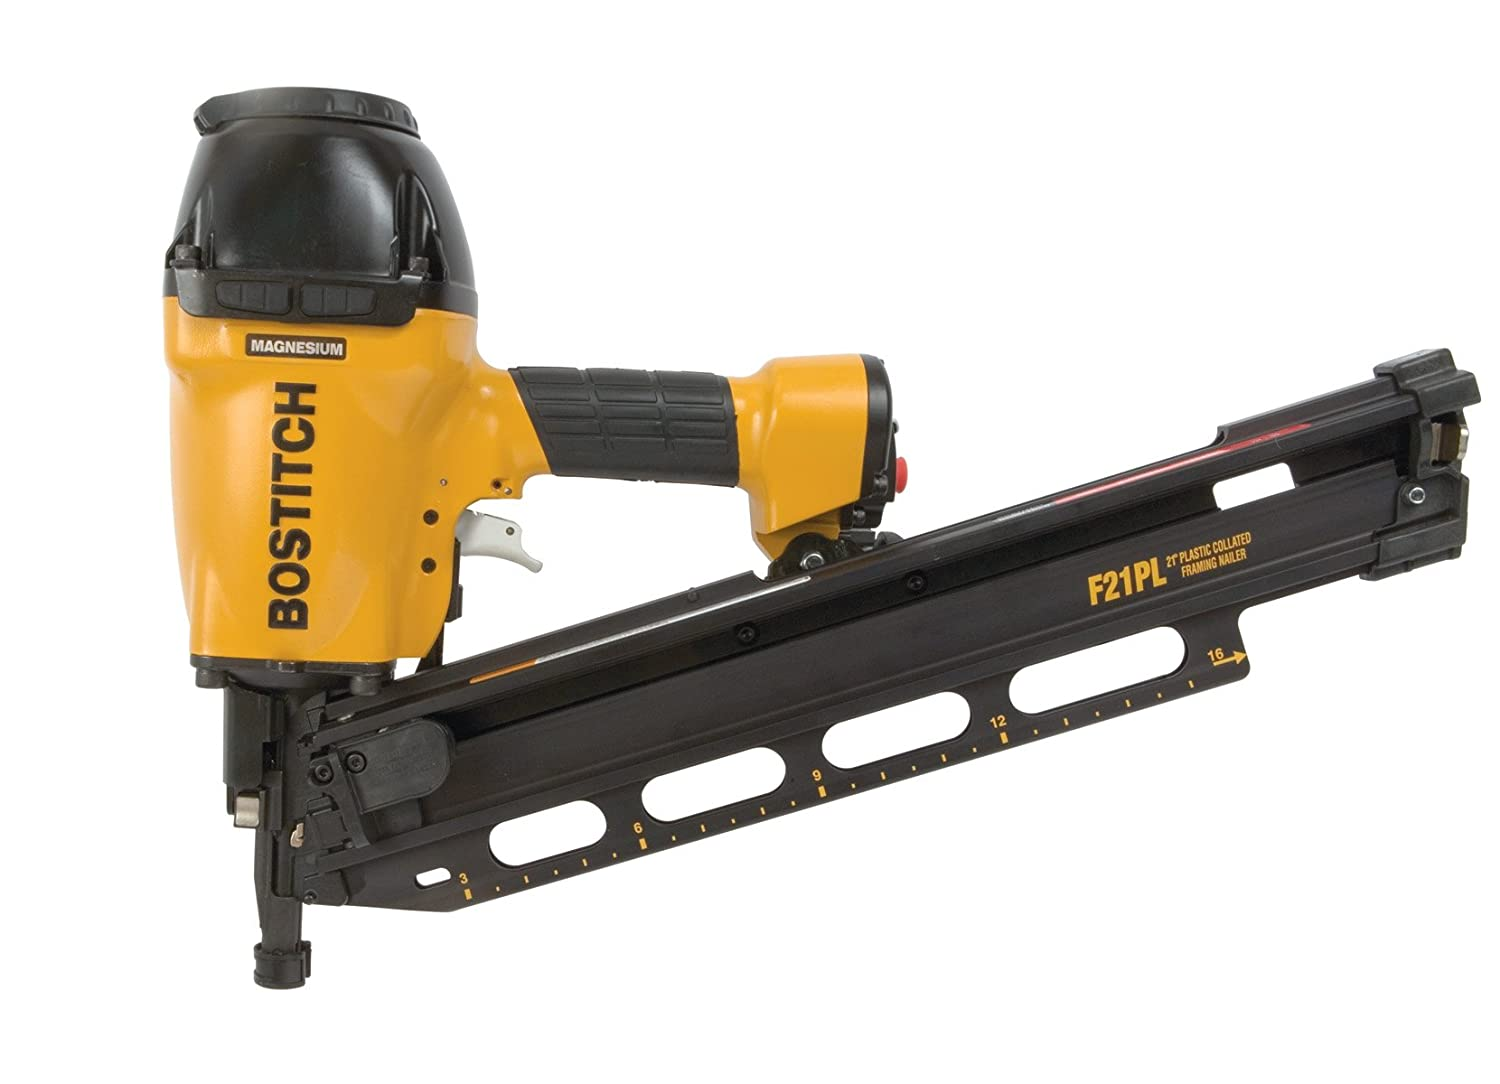 bostitch f21pl round head 1 12 inch to 3 12 inch framing nailer with positive placement tip and magnesium housing power nailers amazoncom